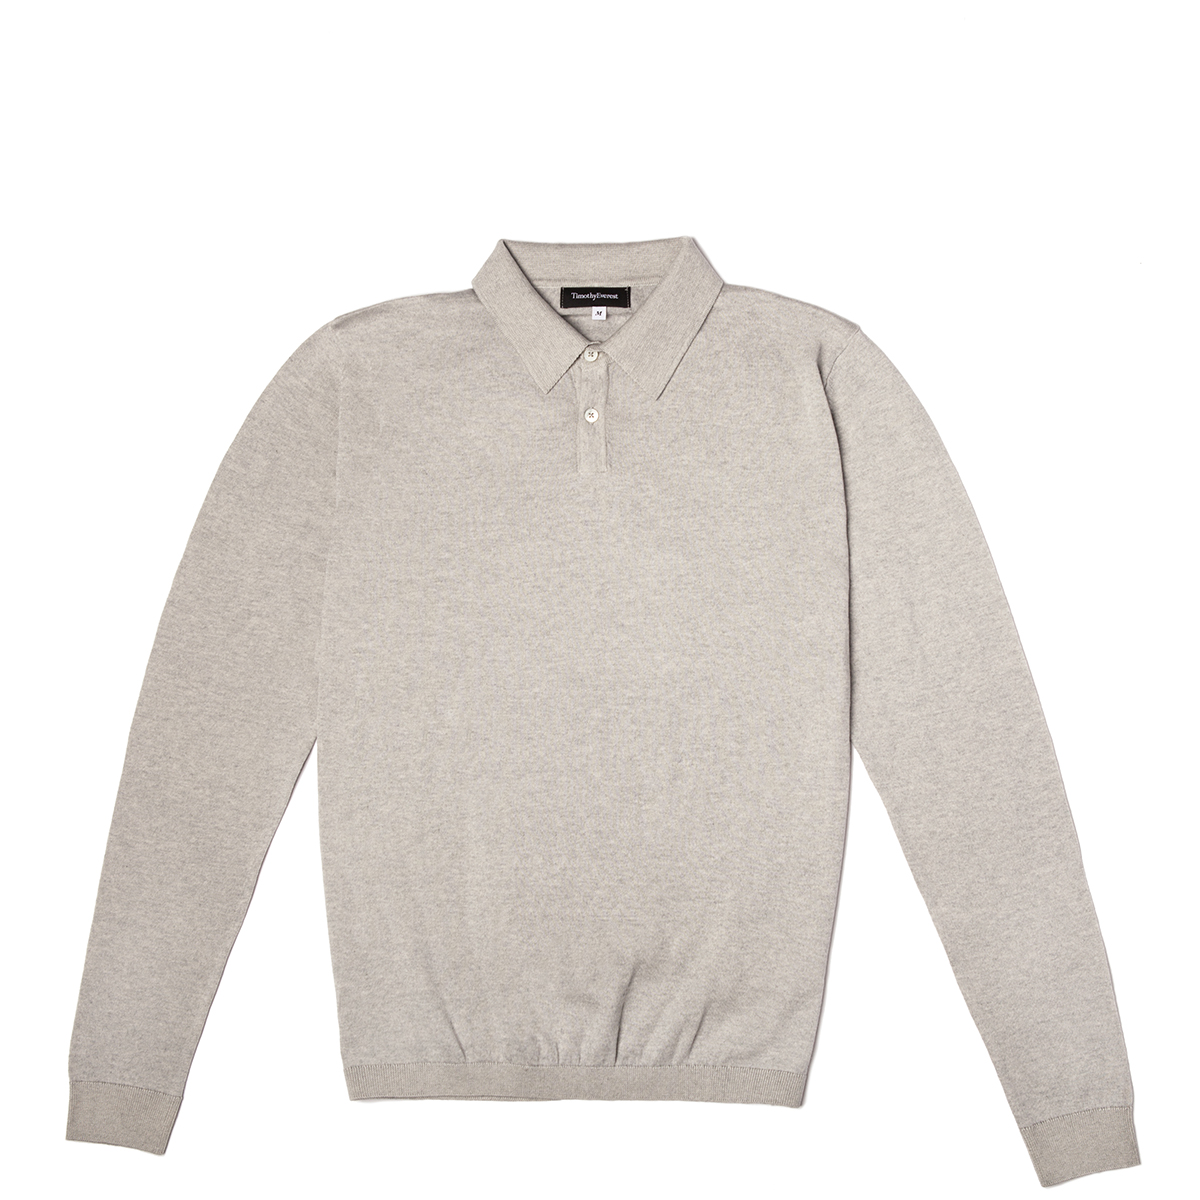 Timothy Everest Grey Lightweight Cotton/Cashmere Knitted Polo Shirt